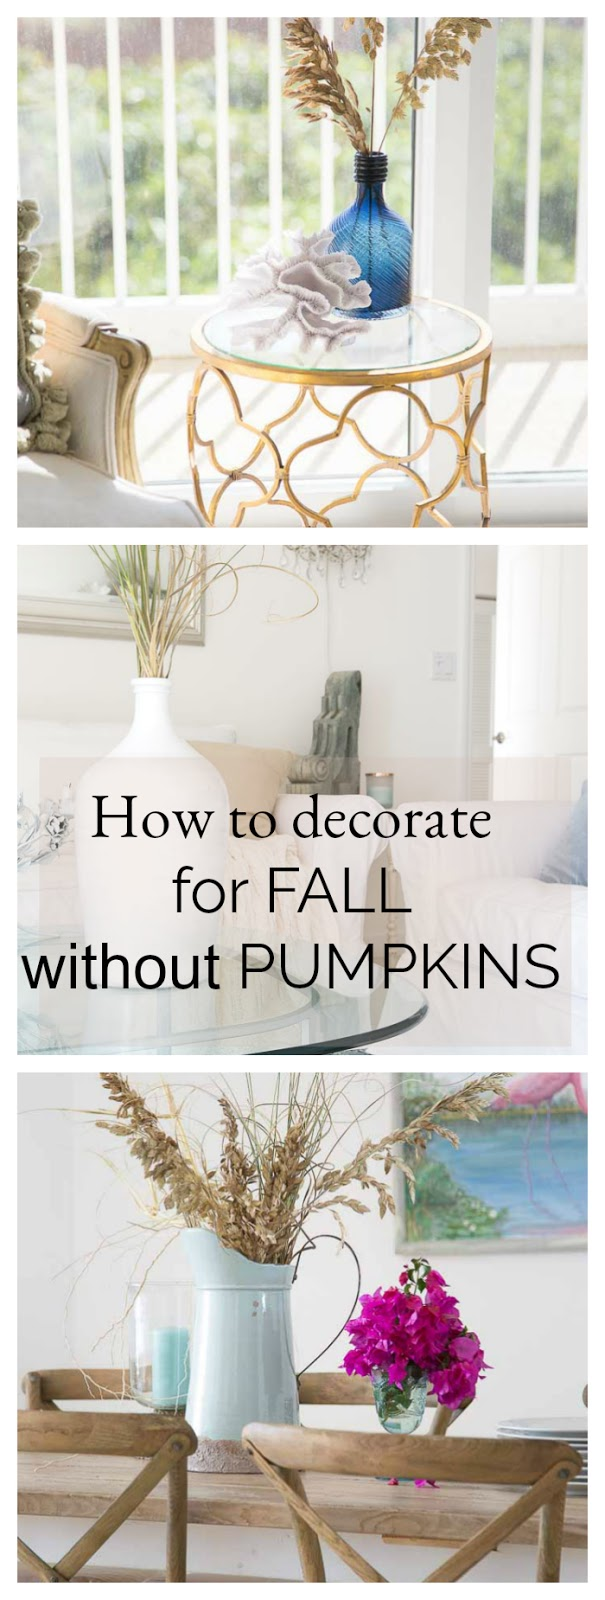 How To Decorate For Fall Without Pumpkins - shabbyfufublog